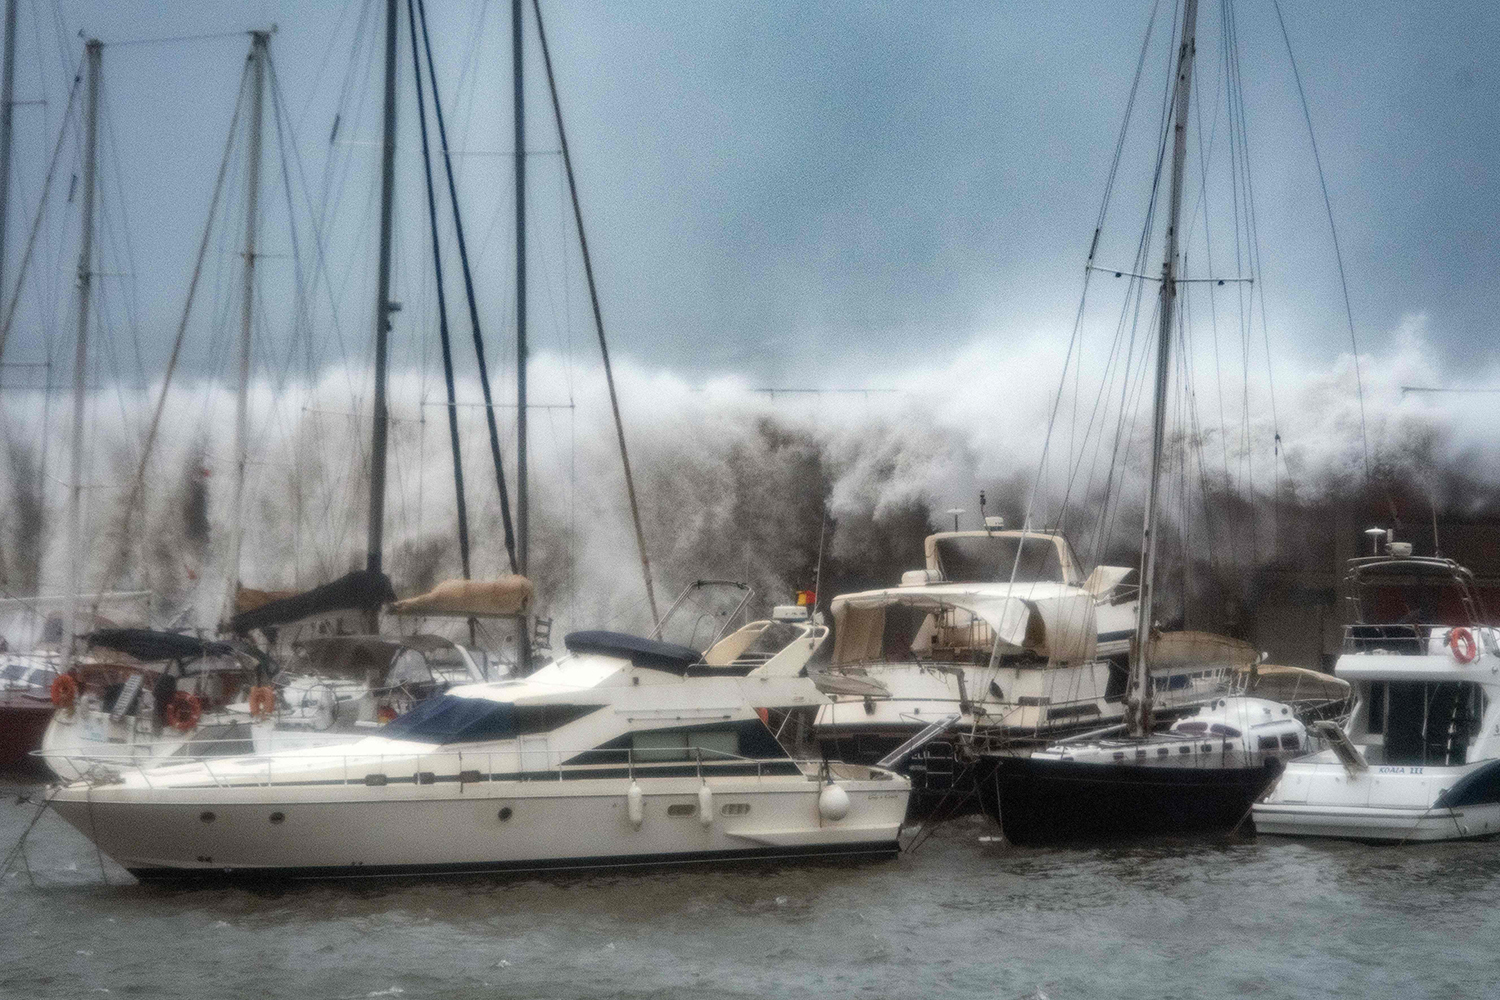 Big waves overtake a breakwater at the Port Olympic marina in Barcelona as storm Gloria batters Spain's eastern coast on Jan. 21. JOSEP LAGO/AFP via Getty Images